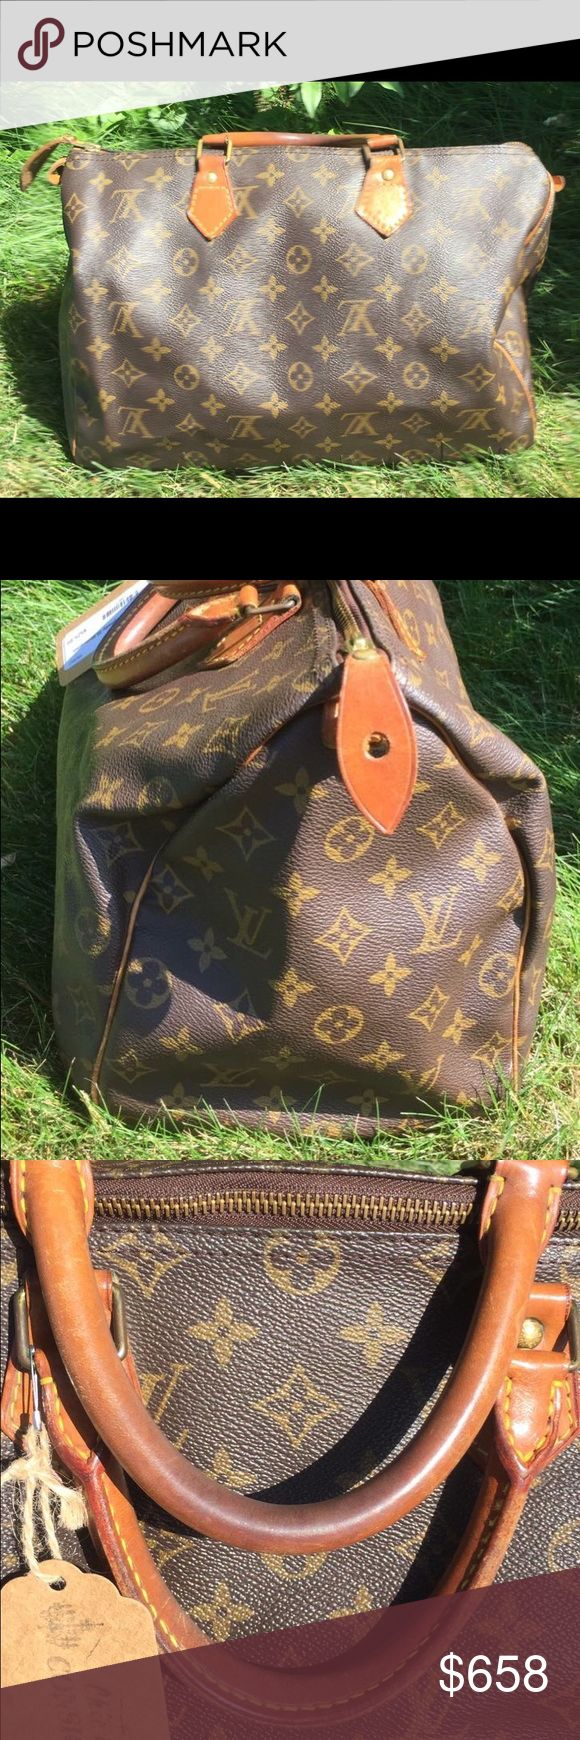 Louis Vuitton Speedy 35 100% AUTHENTIC- great condition - Price firm no trades - buy for less & more pics at www.chicboutiqueconsignments.com! MA's #1 designer consignment boutique! Louis Vuitton Bags Totes